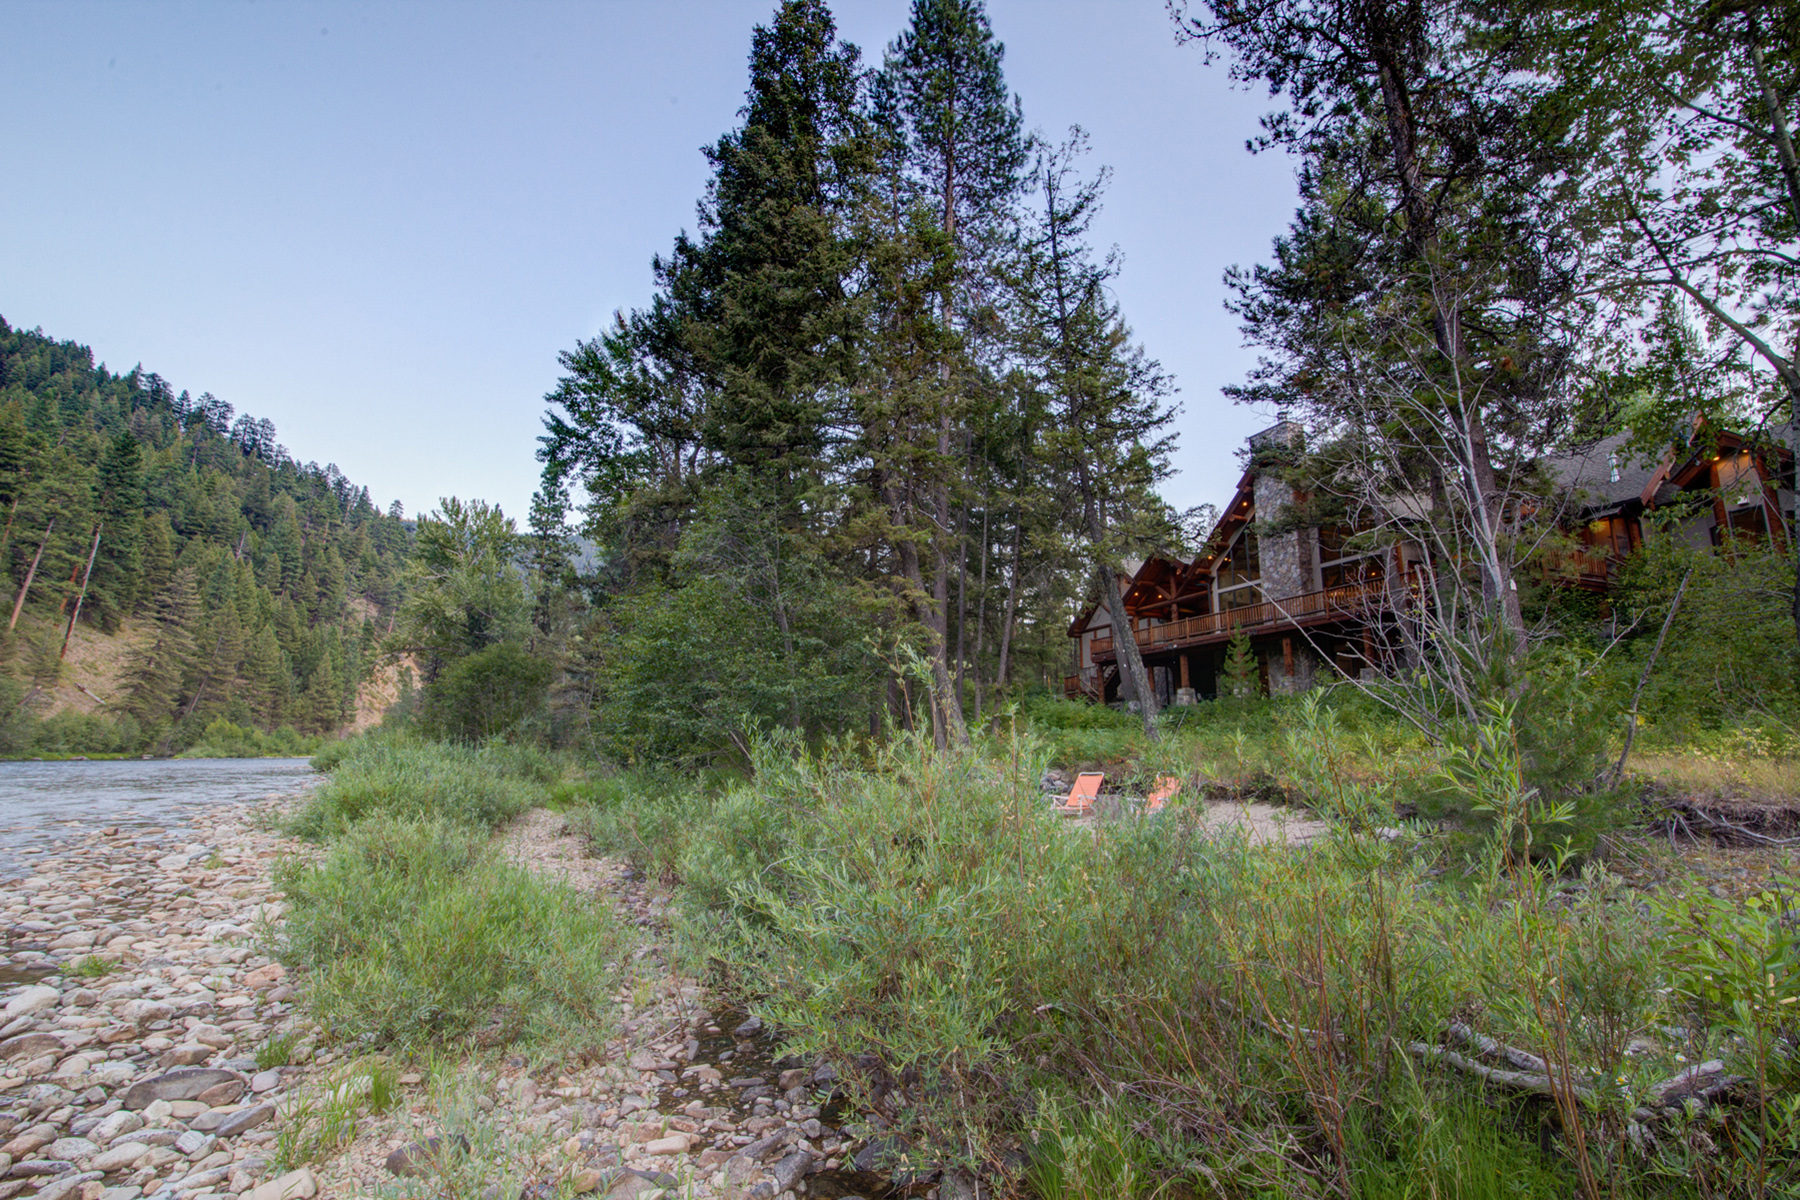 Single Family Home for Sale at 6330 West Fork Rd , Darby, MT 59829 6330 West Fork Rd Darby, Montana, 59829 United States